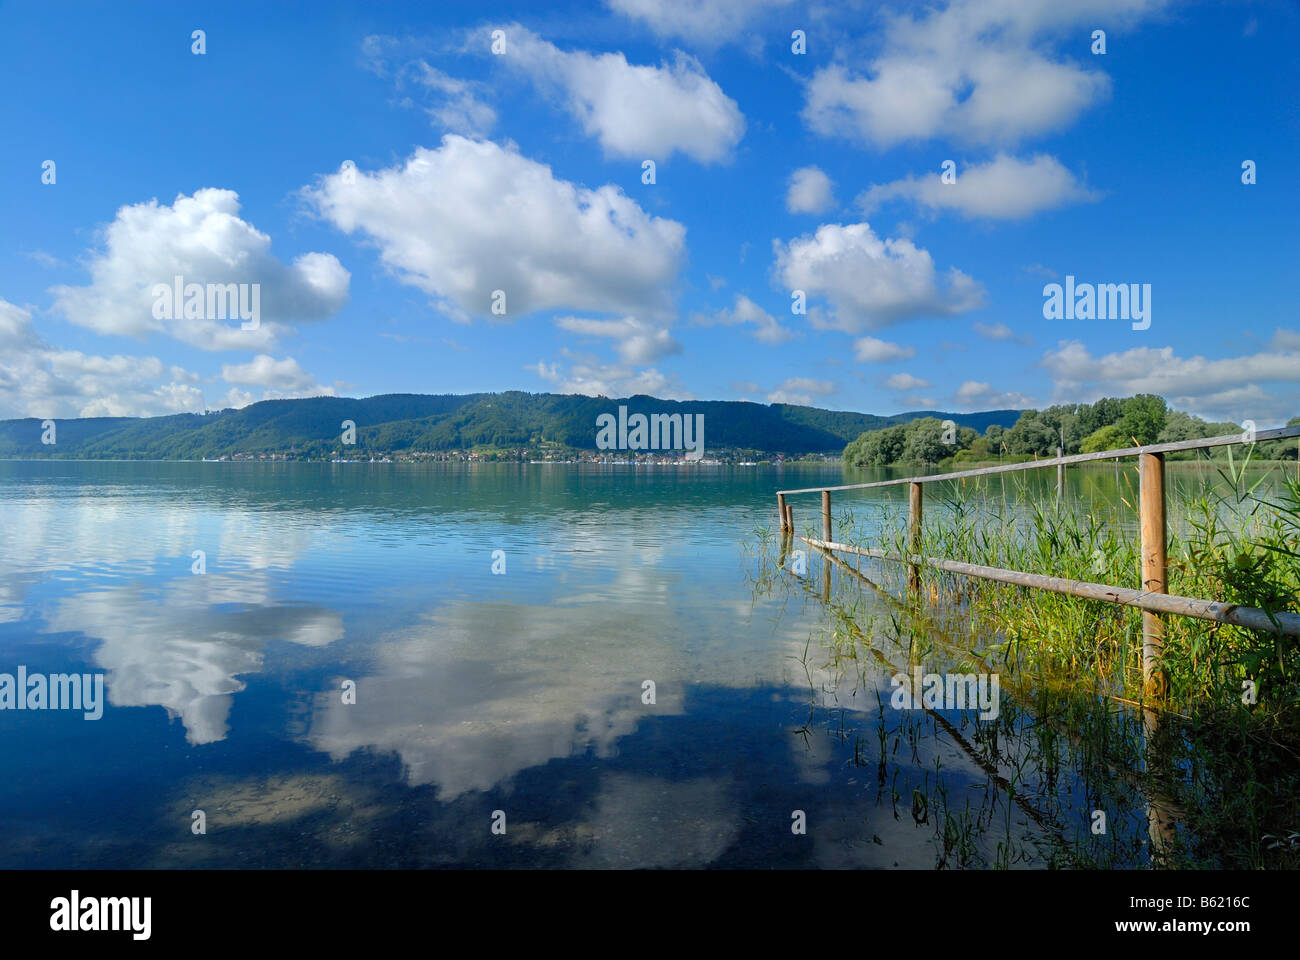 View across Bodensee, Lake Constance, towards Bodman Ludwigshafen, Baden-Wuerttemberg, Germany, Europe - Stock Image